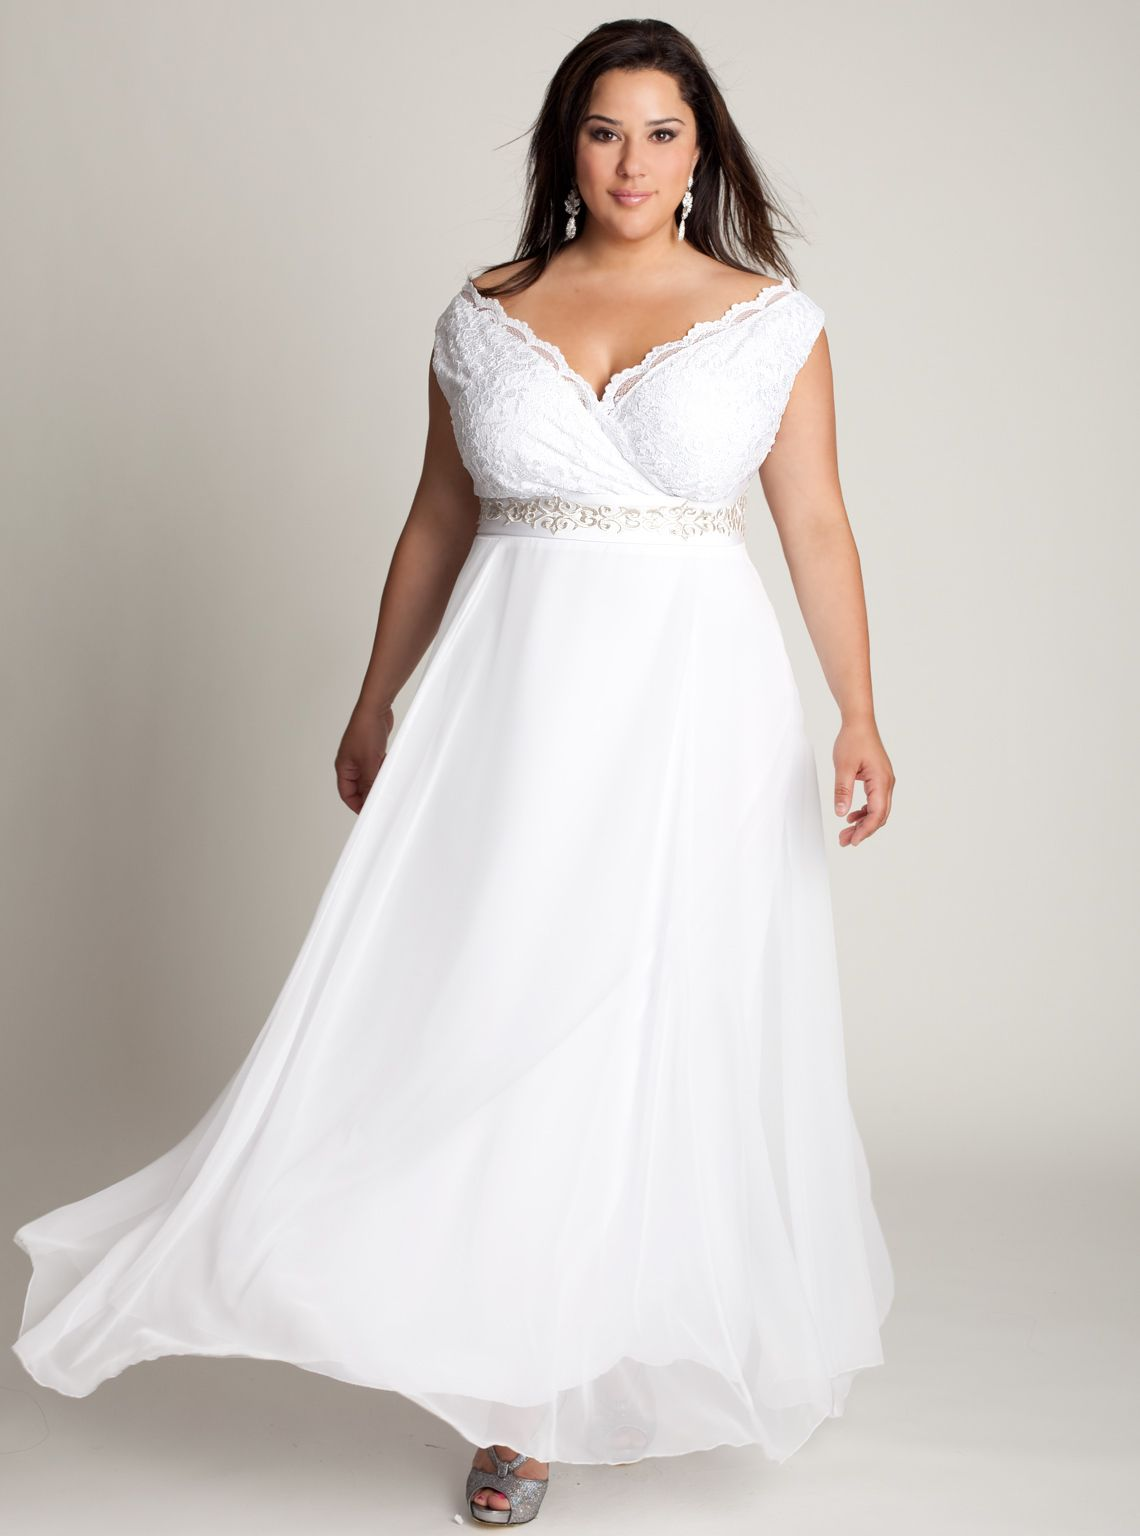 a8667baac2 Wedding Dresses for Fuller Figure - Best Shapewear for Wedding Dress Check  more at http